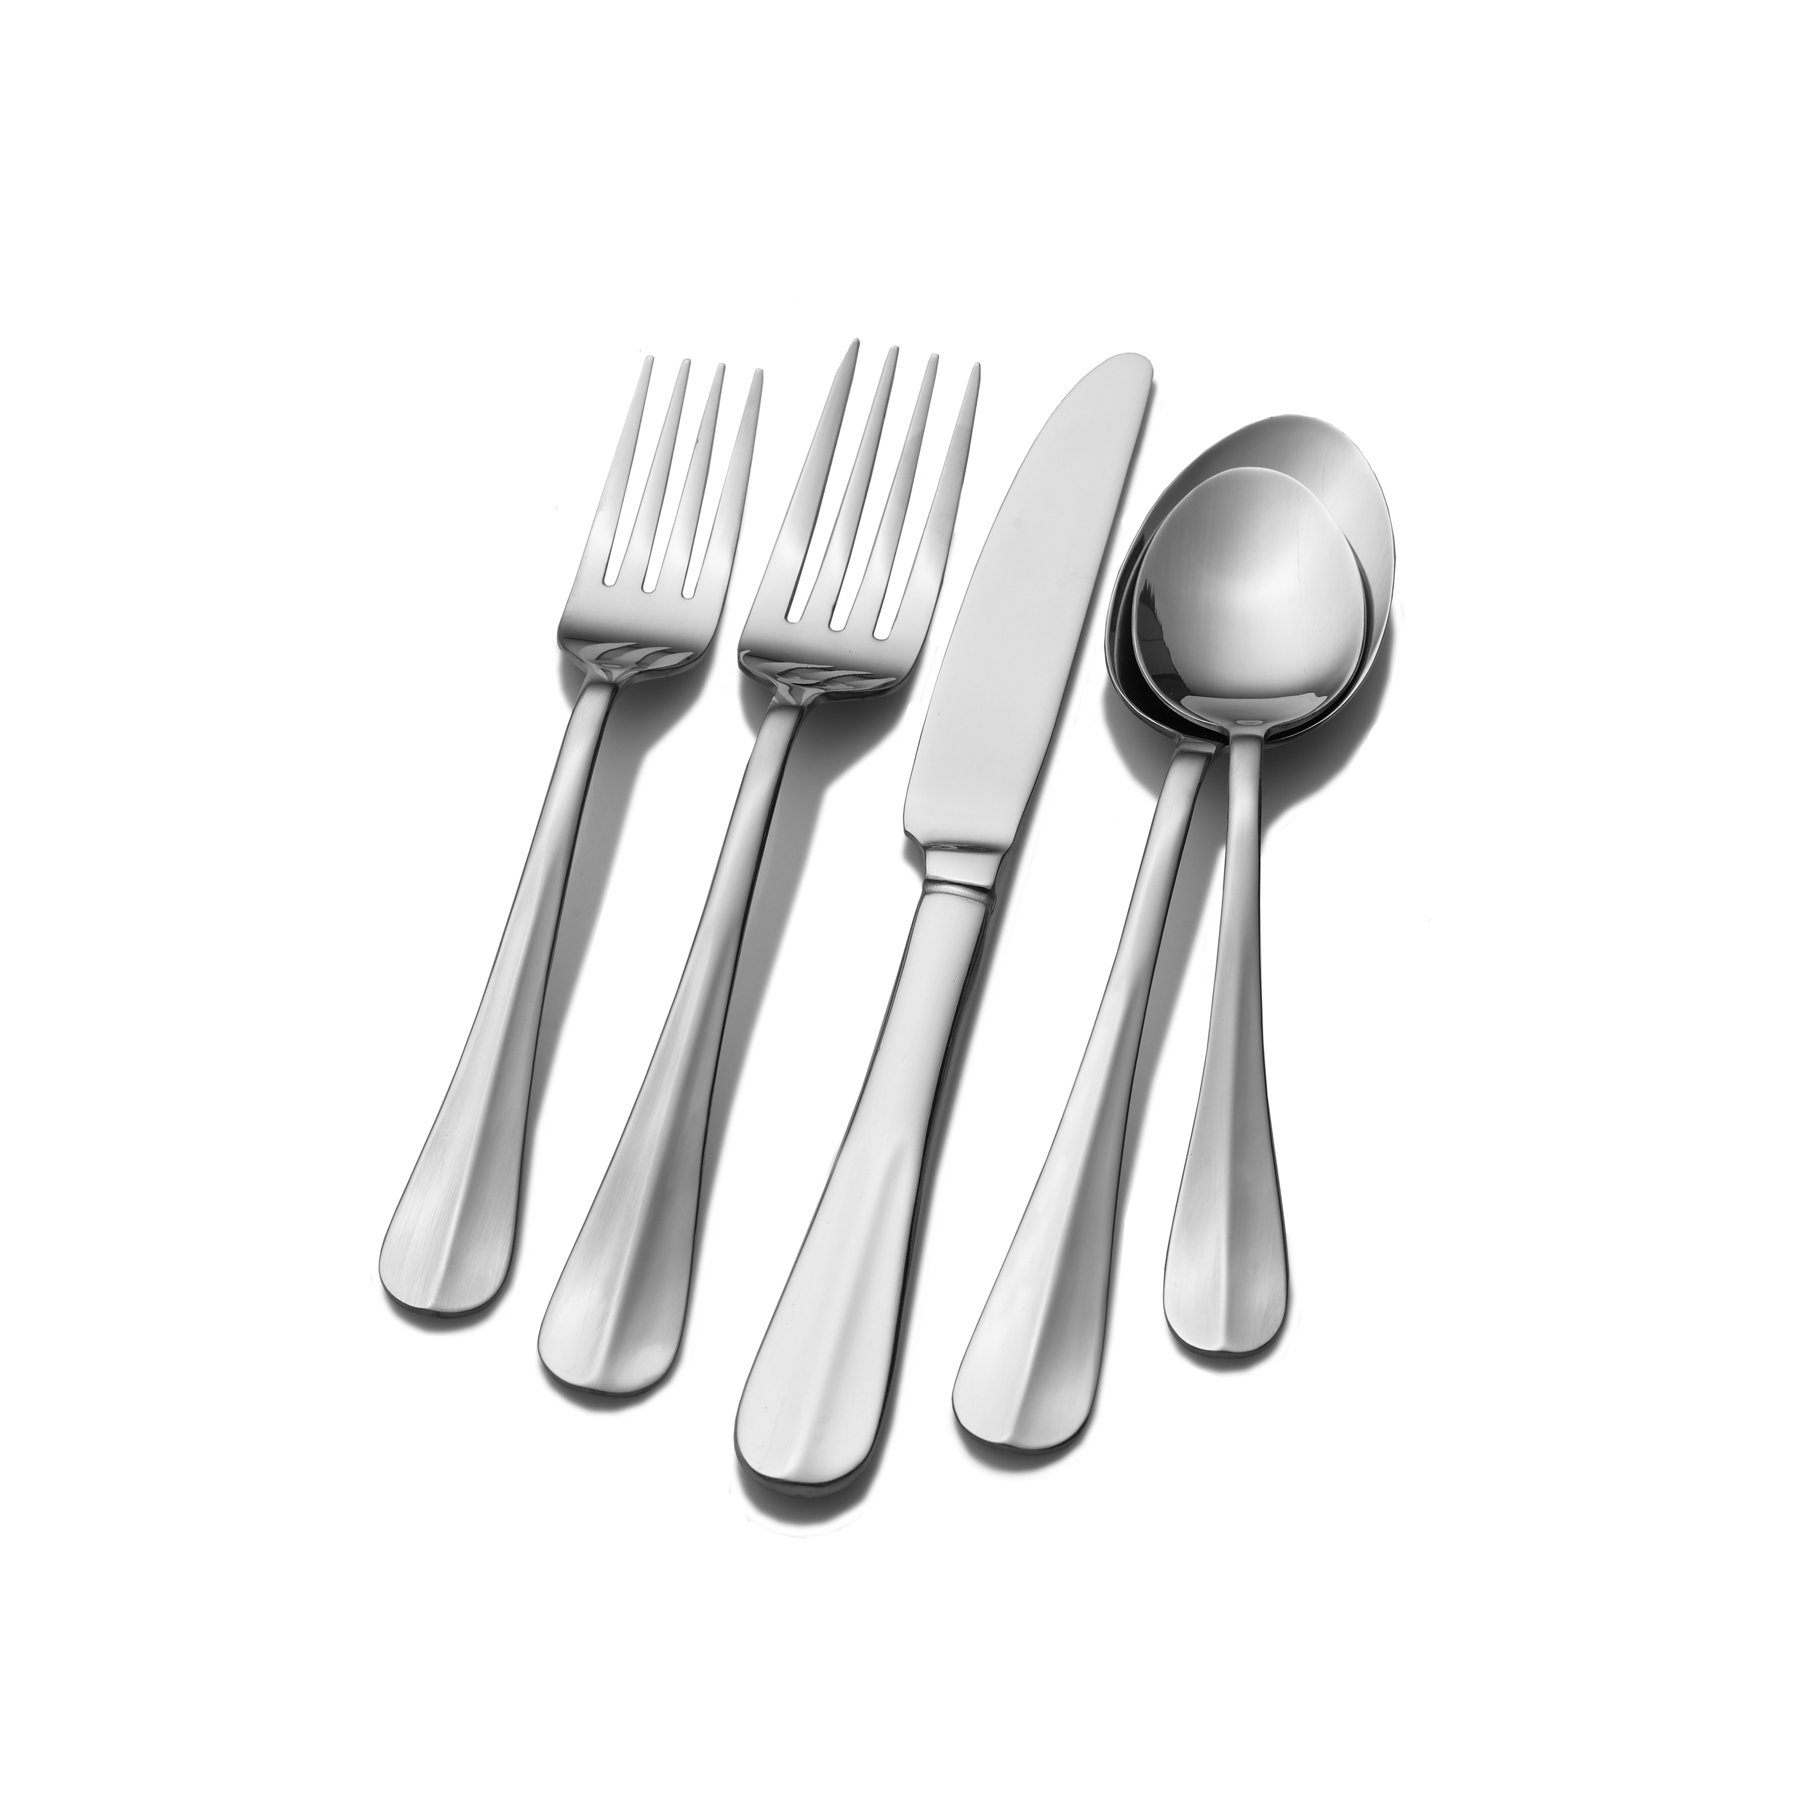 Pfaltzgraff 5077445 Simplicity 20-Piece Stainless Steel Flatware Set, Service for 4